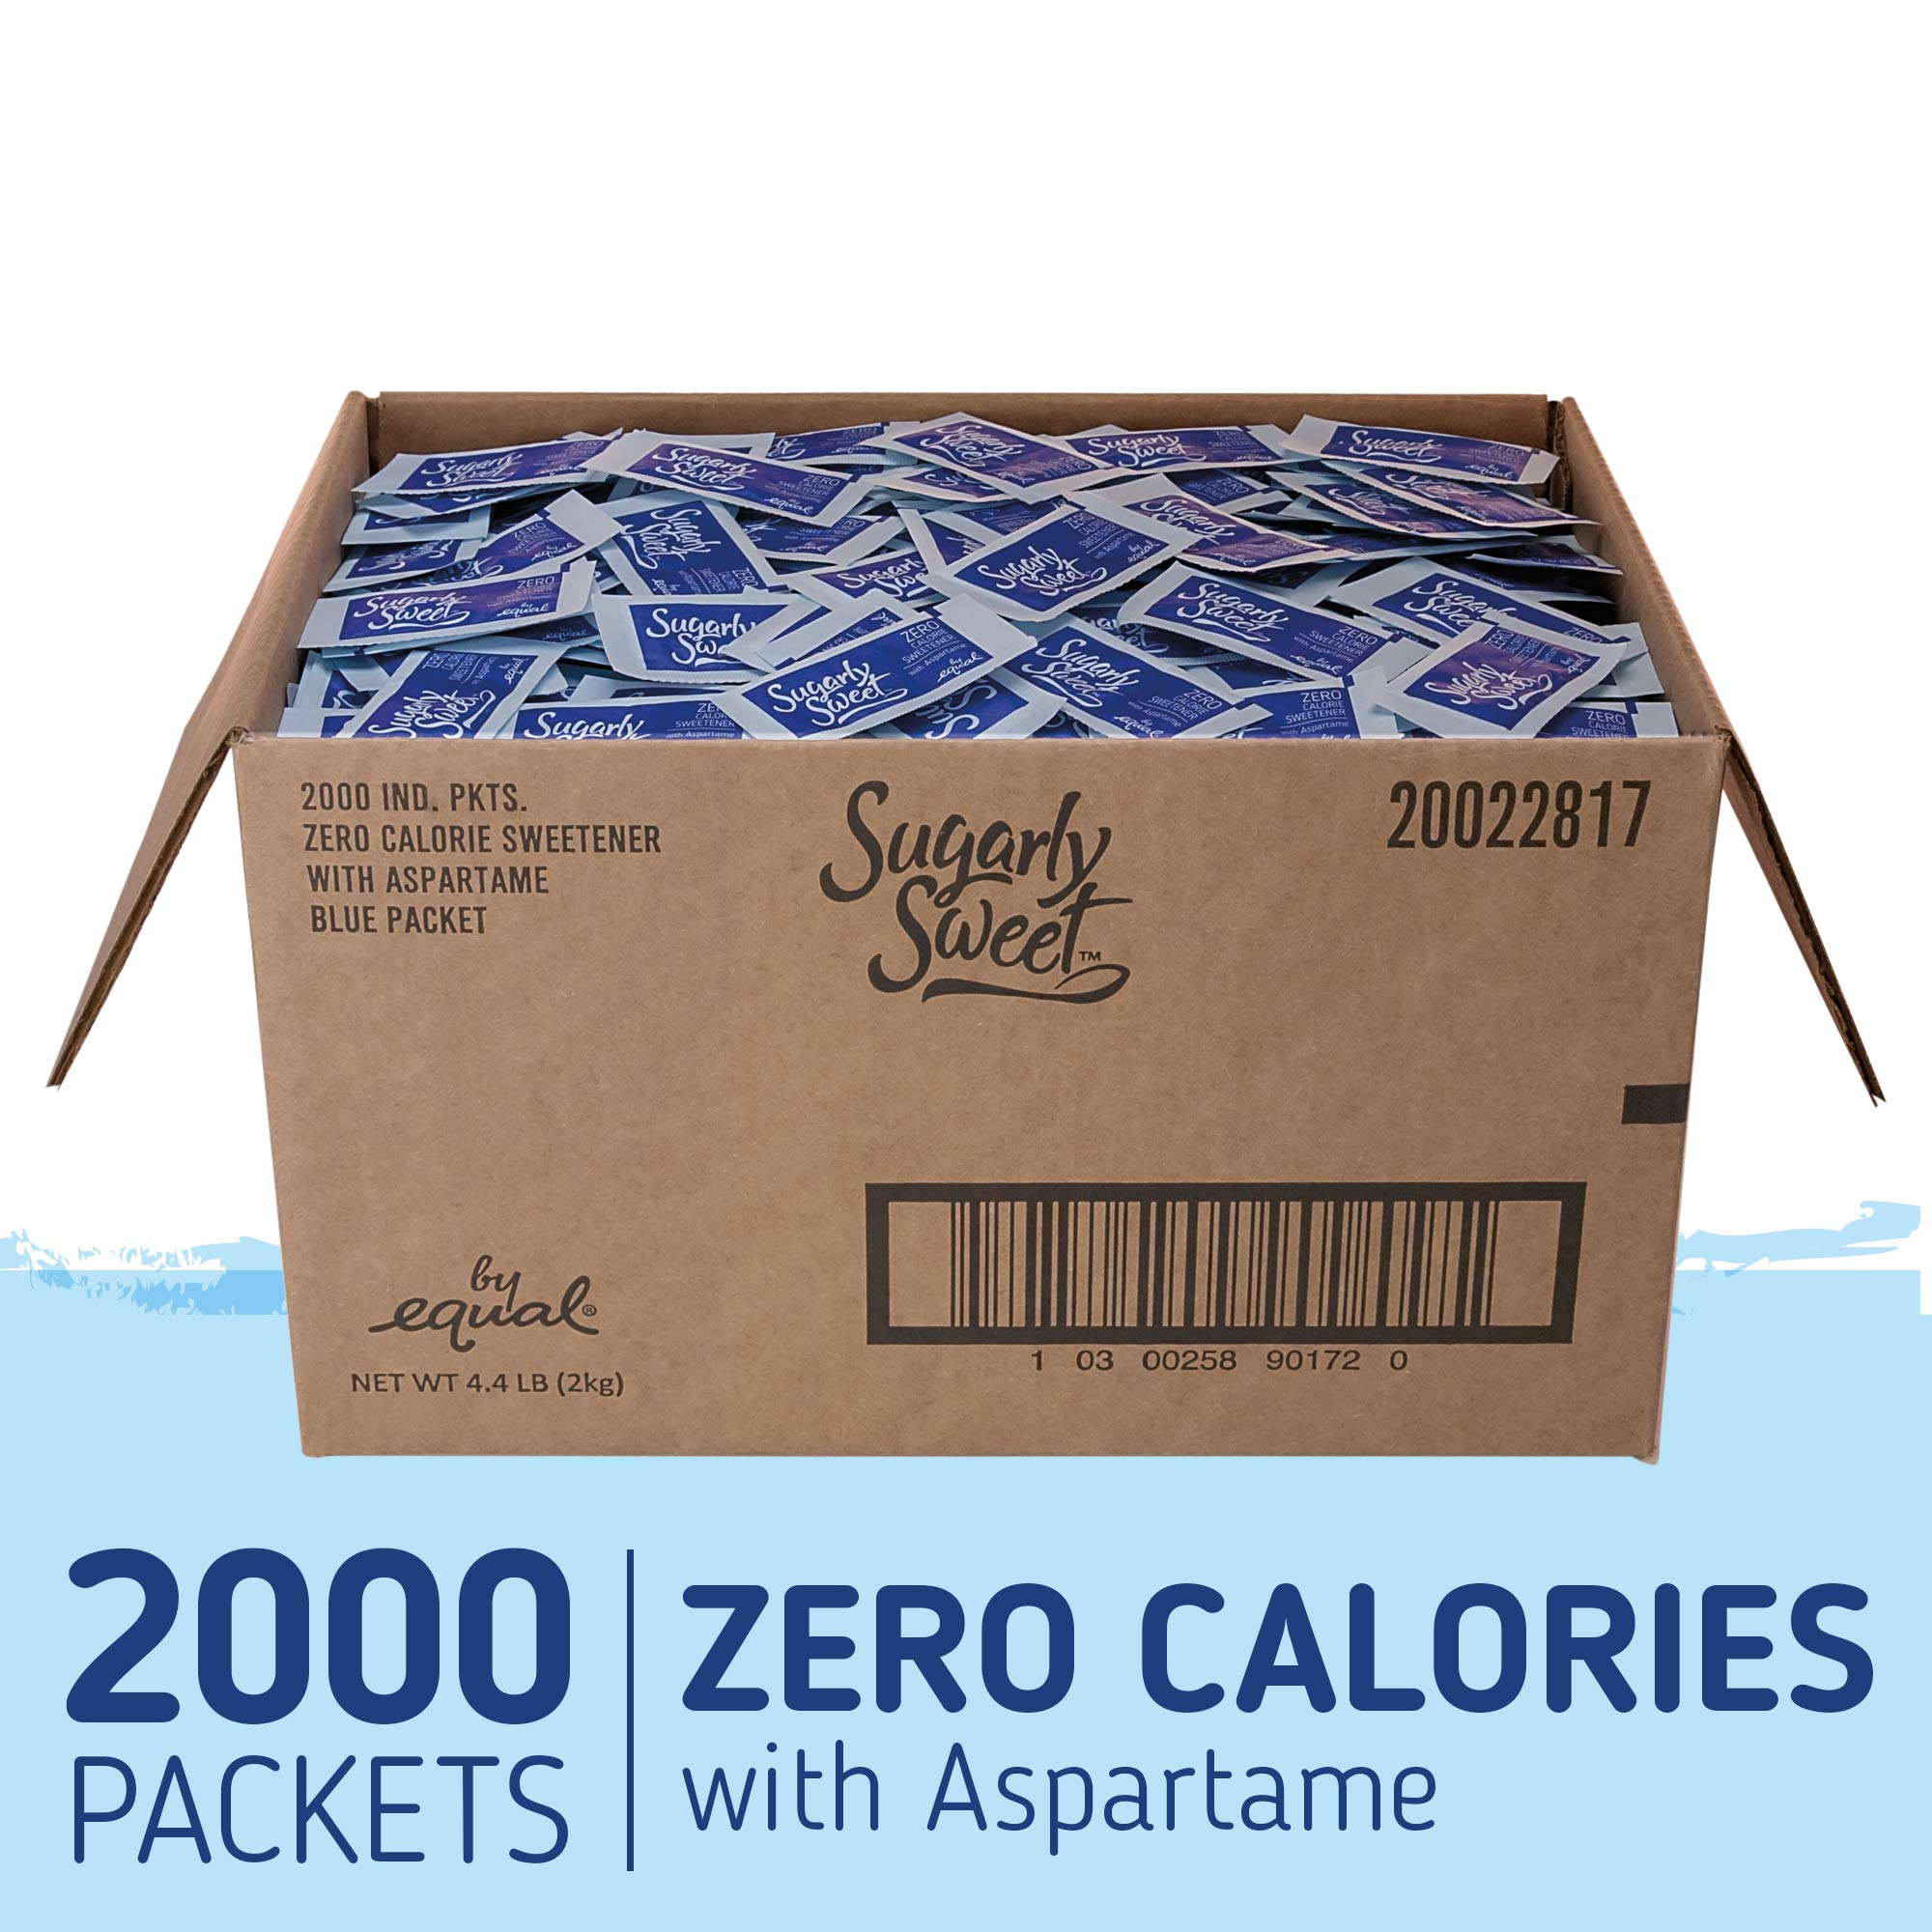 SUGARLY SWEET Zero Calorie Sweetener Packets with Aspartame, Sugar Substitute, Sugar Alternative, Blue Sweetener Packets, 2,000 Packets